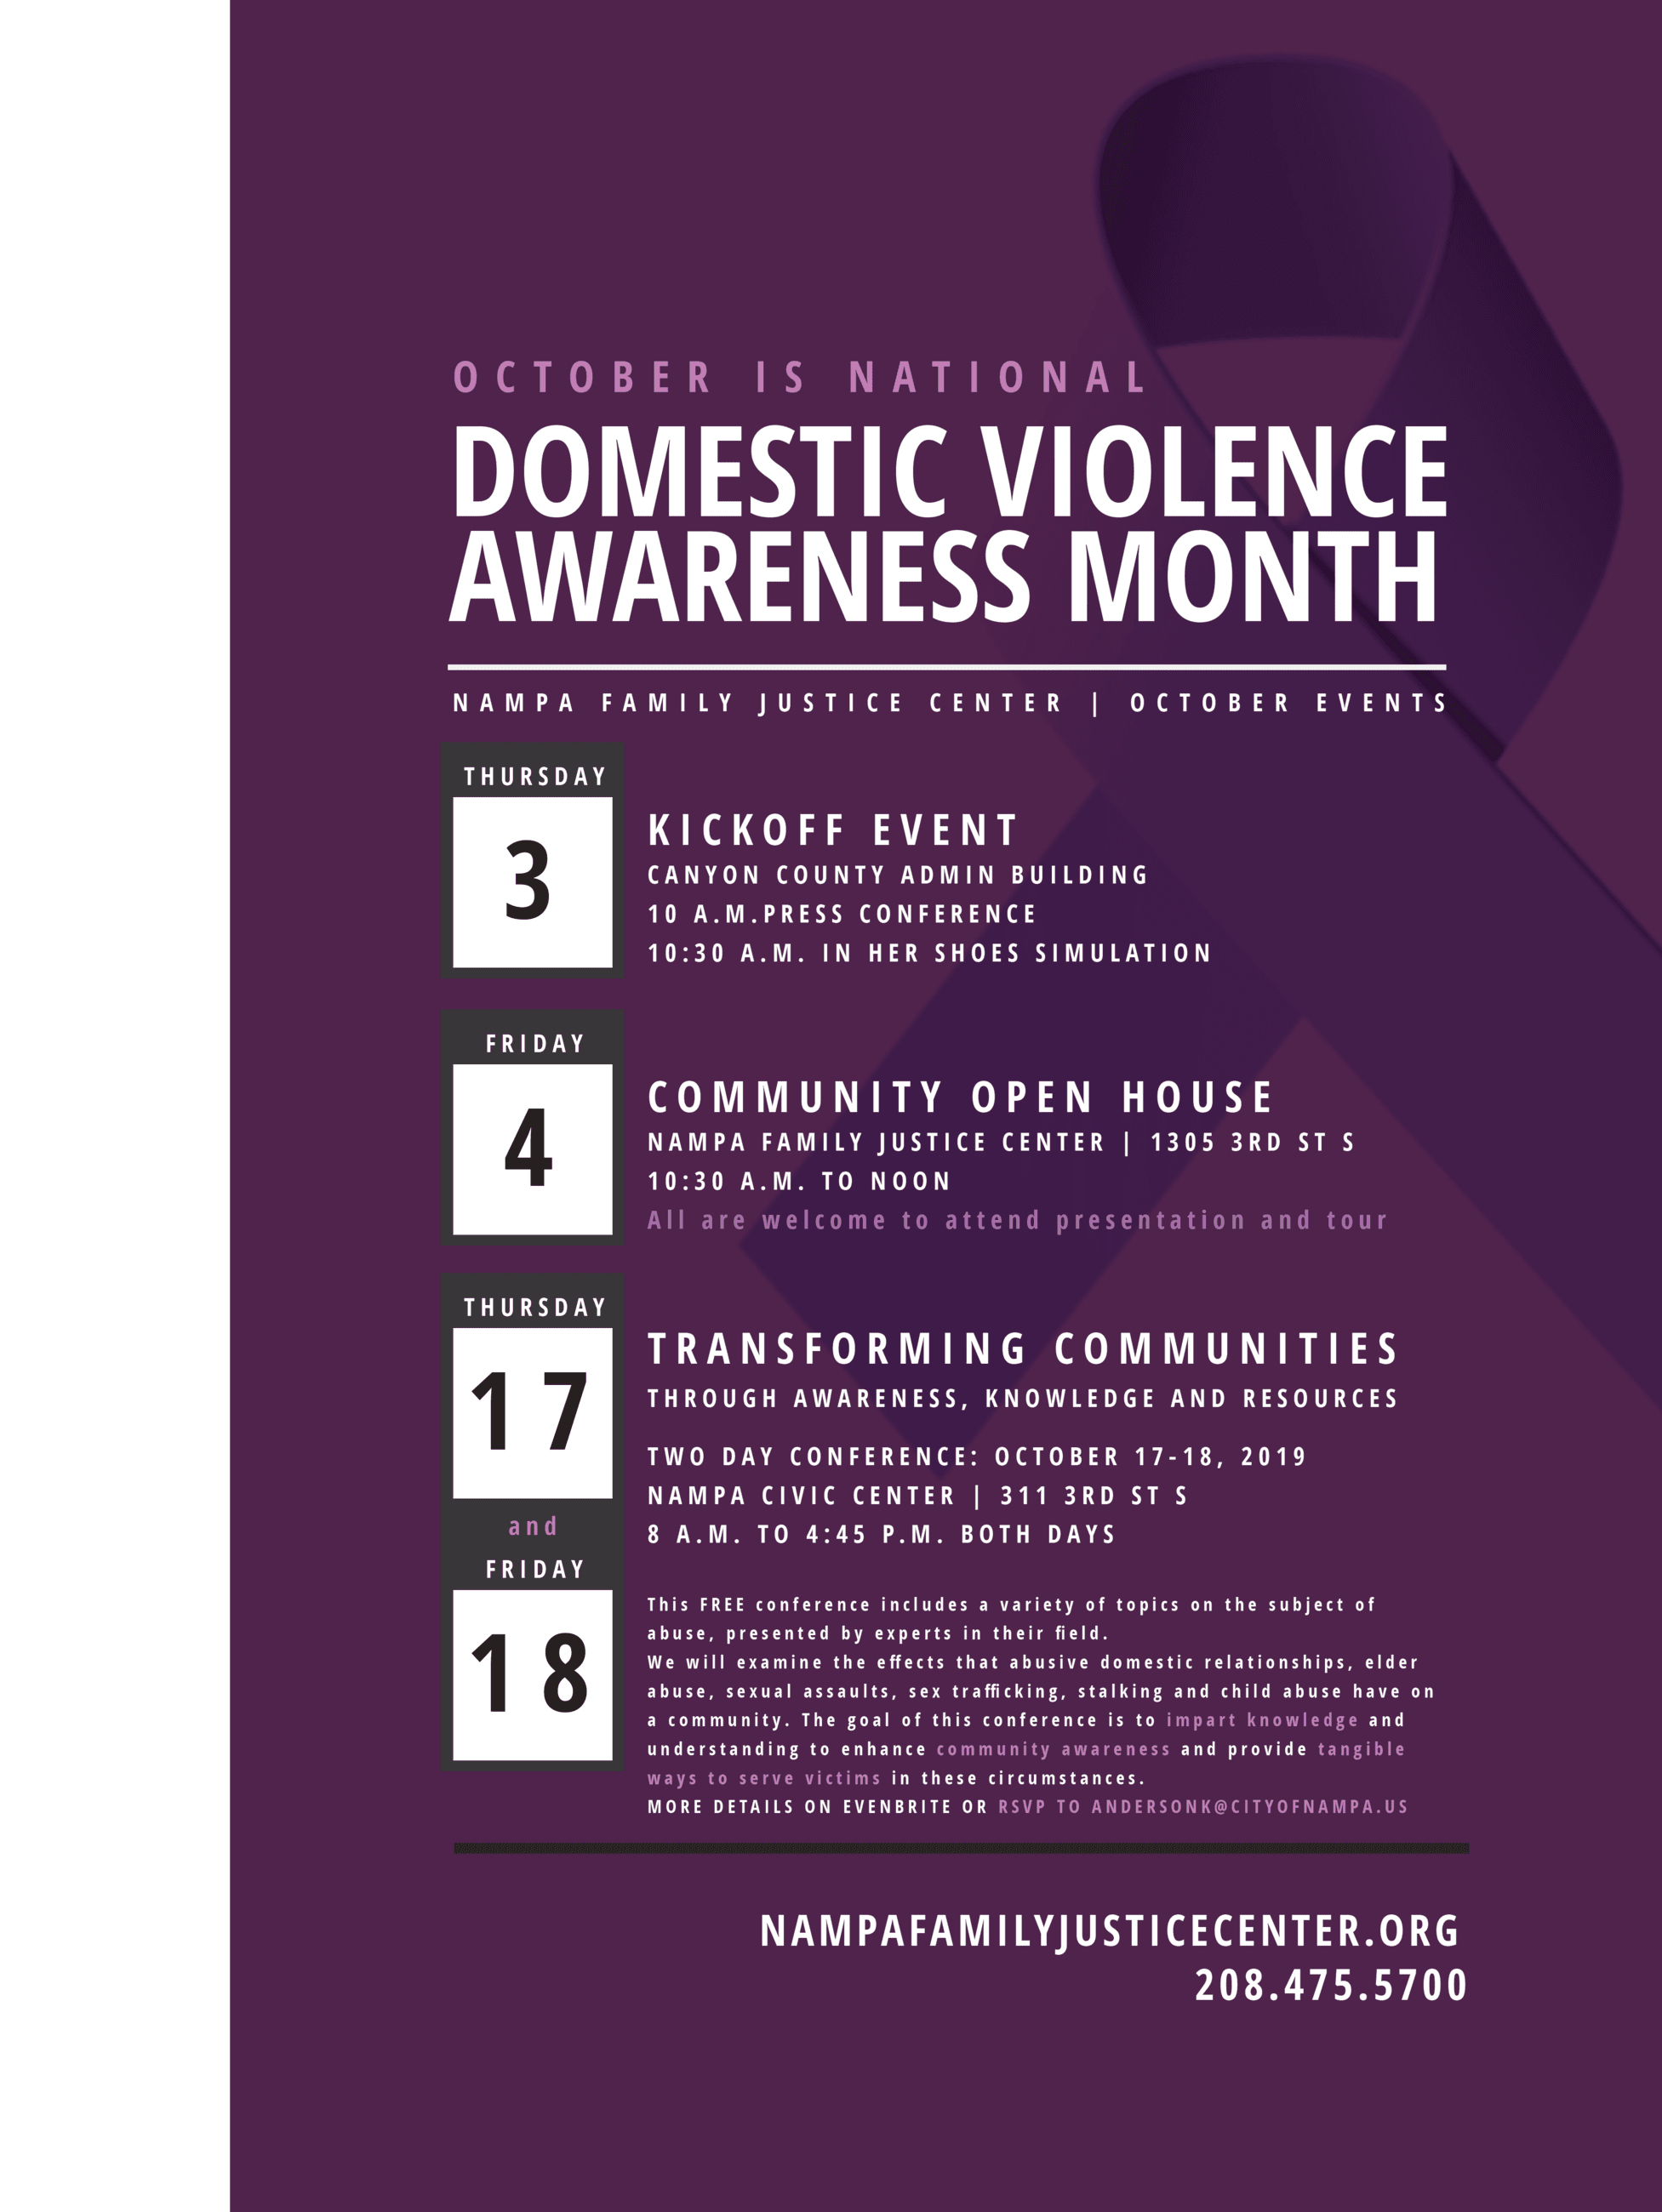 NFJC Domestic Violence Awareness Month 2019 TABLOID